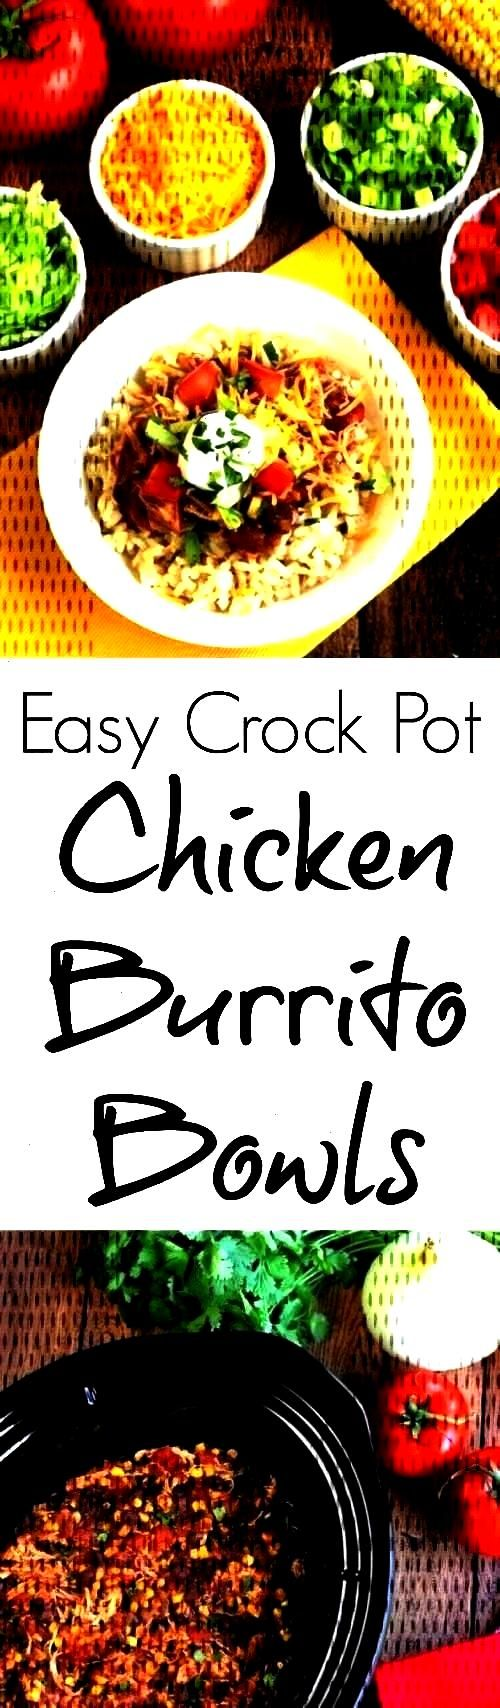 Burrito Bowls - Two Healthy Kitchens -Easy Crock-Pot Chicken Burrito Bowls - Two Healthy Kitchens -